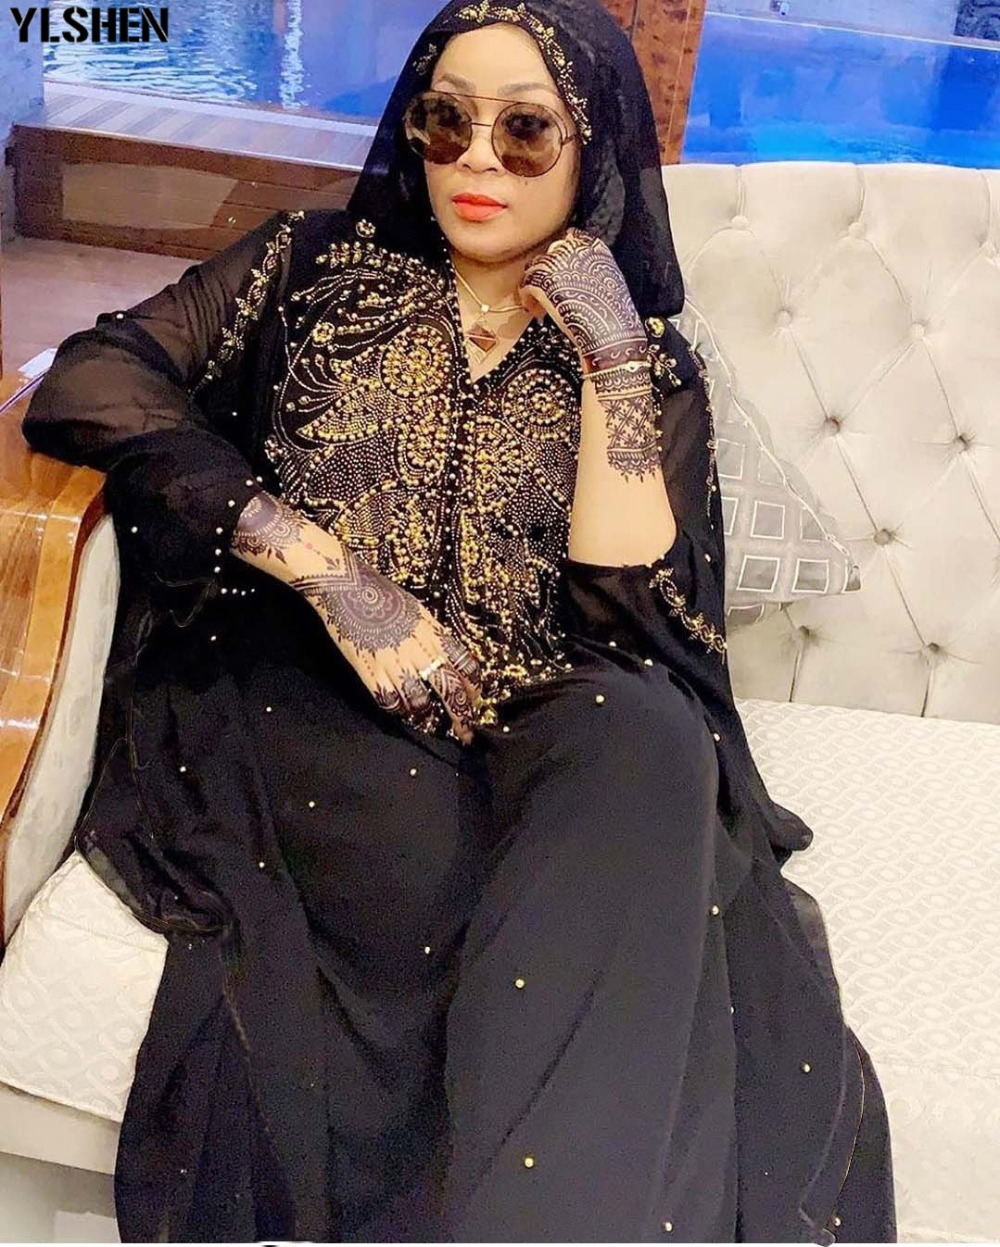 Dashiki African Dresses for Women 2019 New African Clothes Diamond Beads Abaya Dubai Robe Evening Long Muslim Dress Hooded Cape 01